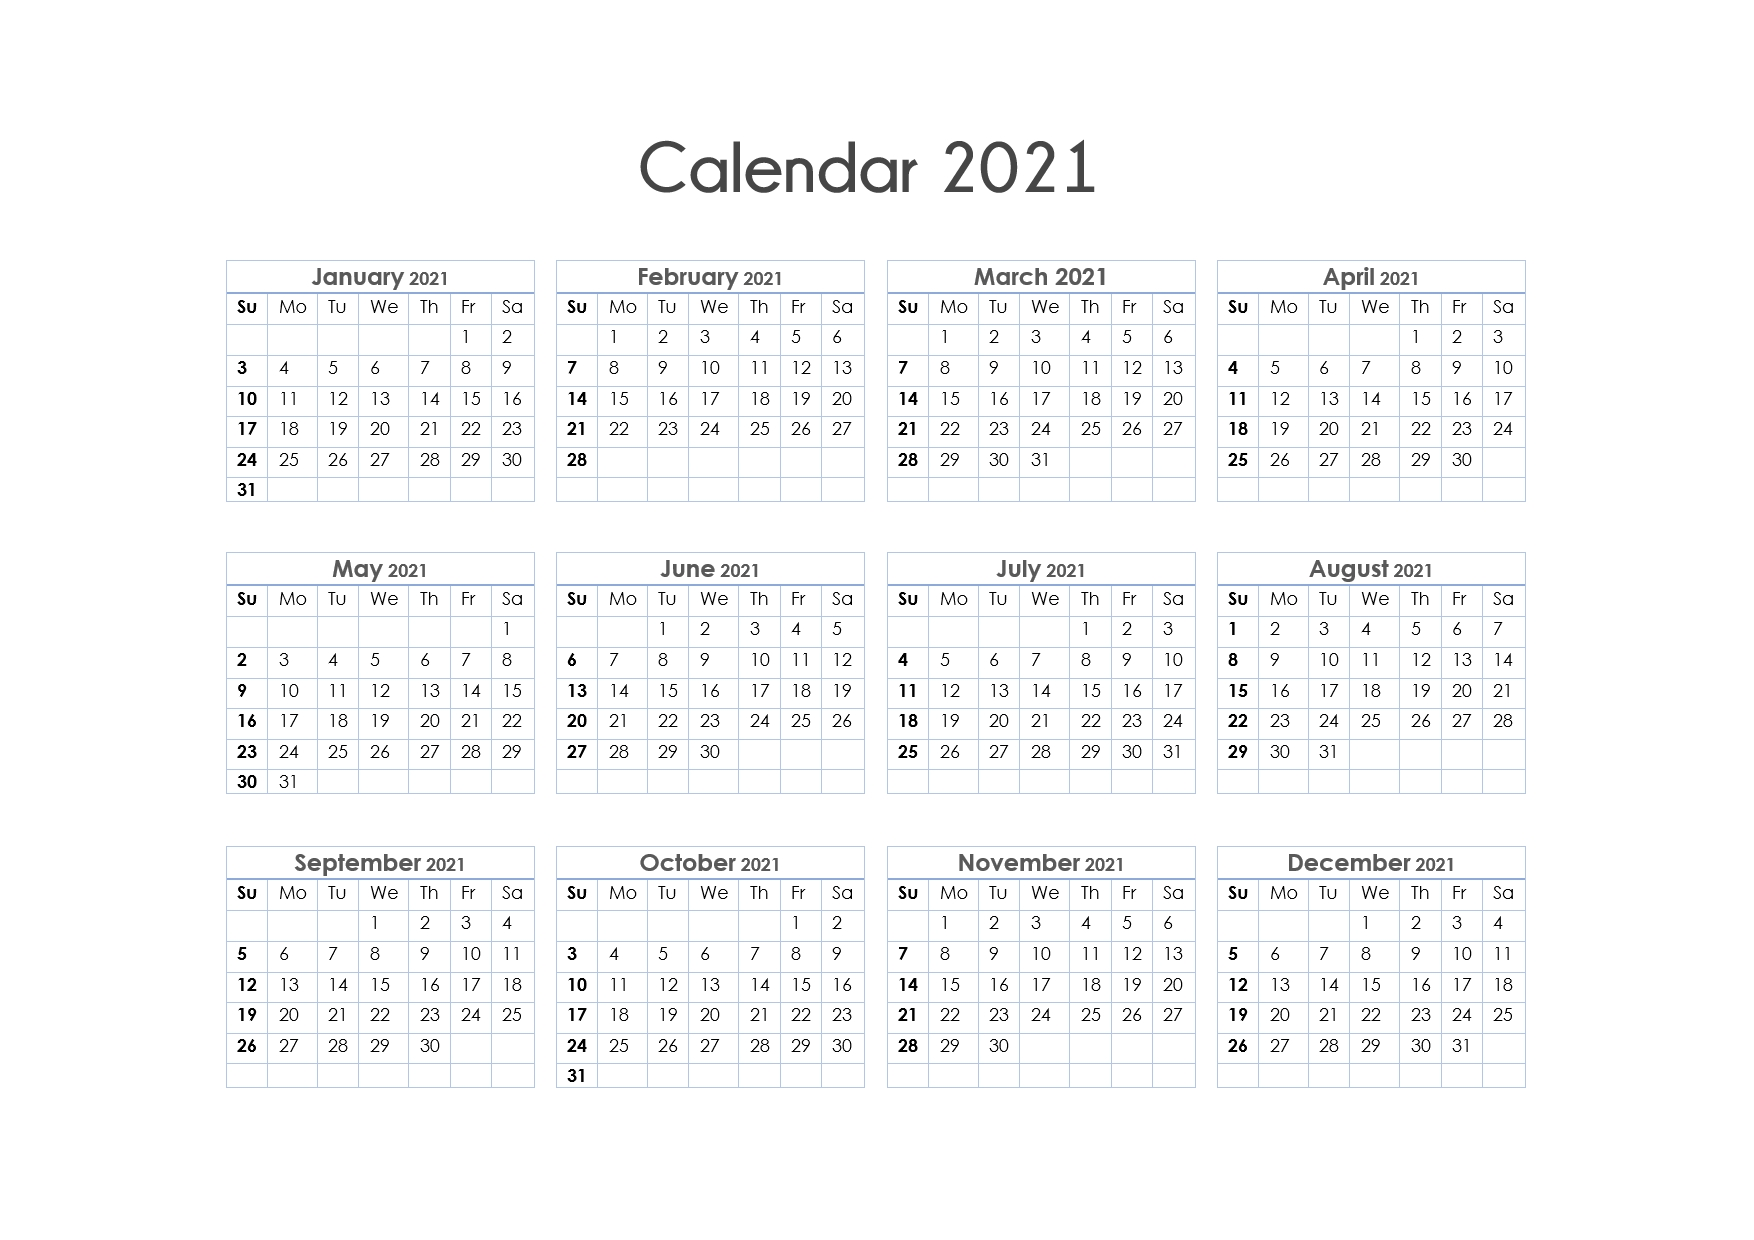 Printable Calendar 2021 One Page, Yearly Calendar, Blank  2021 Calendar Printable One Page